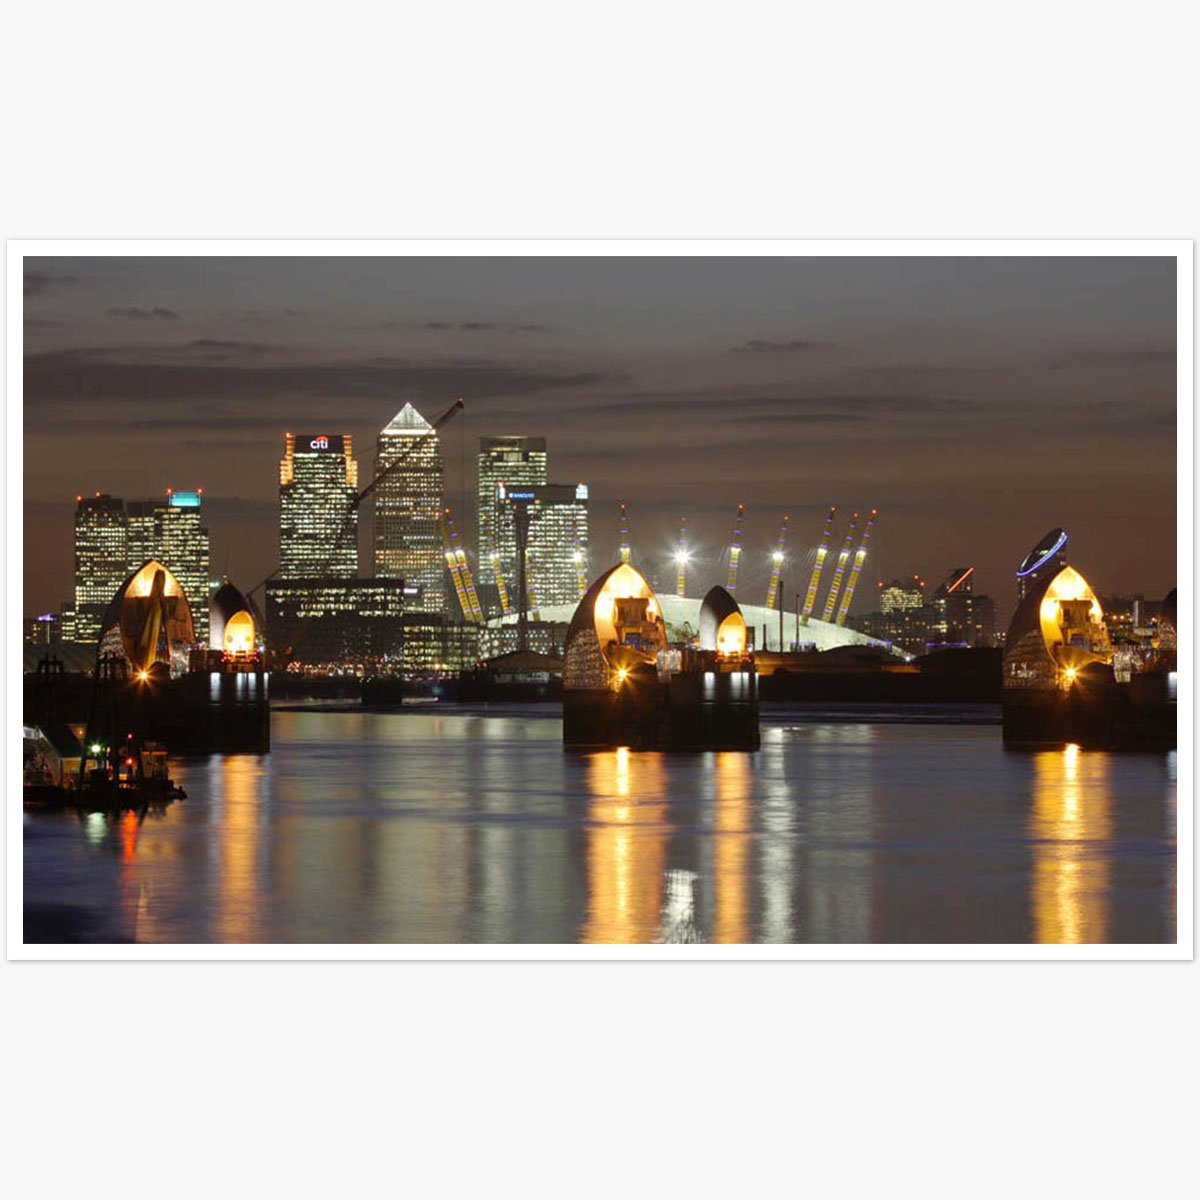 Thames Barrier and Canary Wharf by Roger Jackson